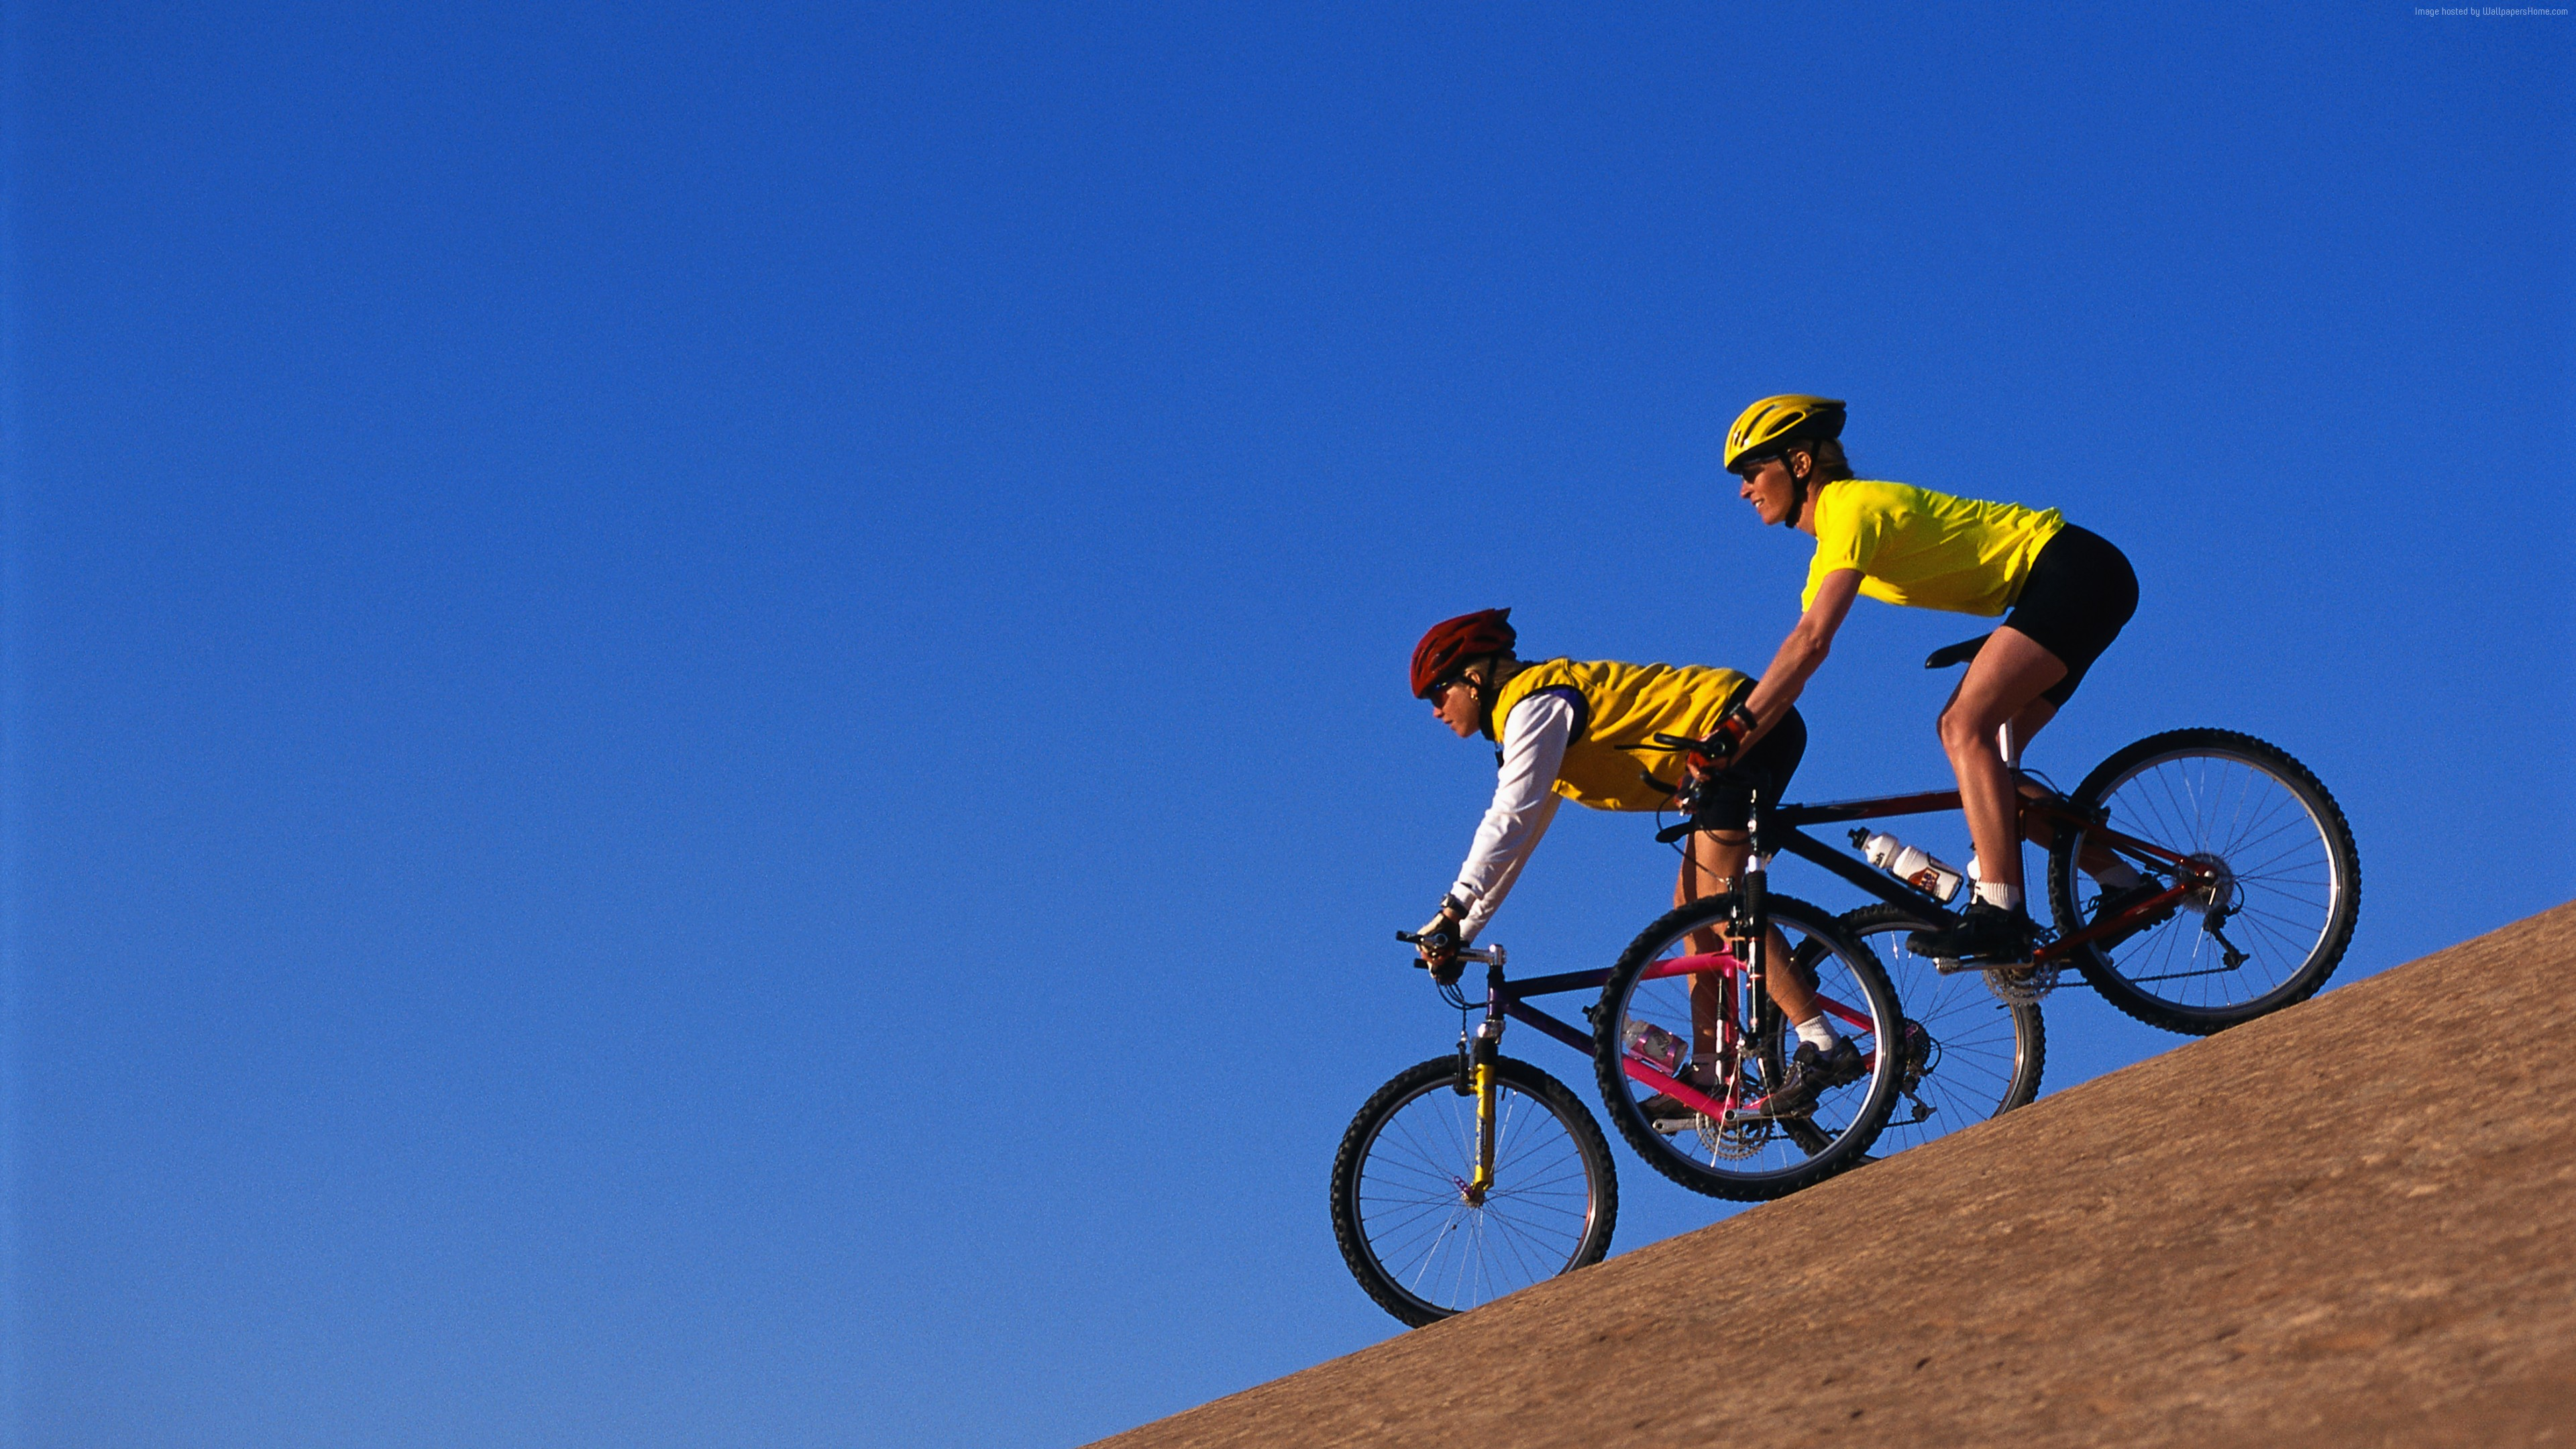 Wallpaper Вicycling, bicyclists, blue, sky, Sport